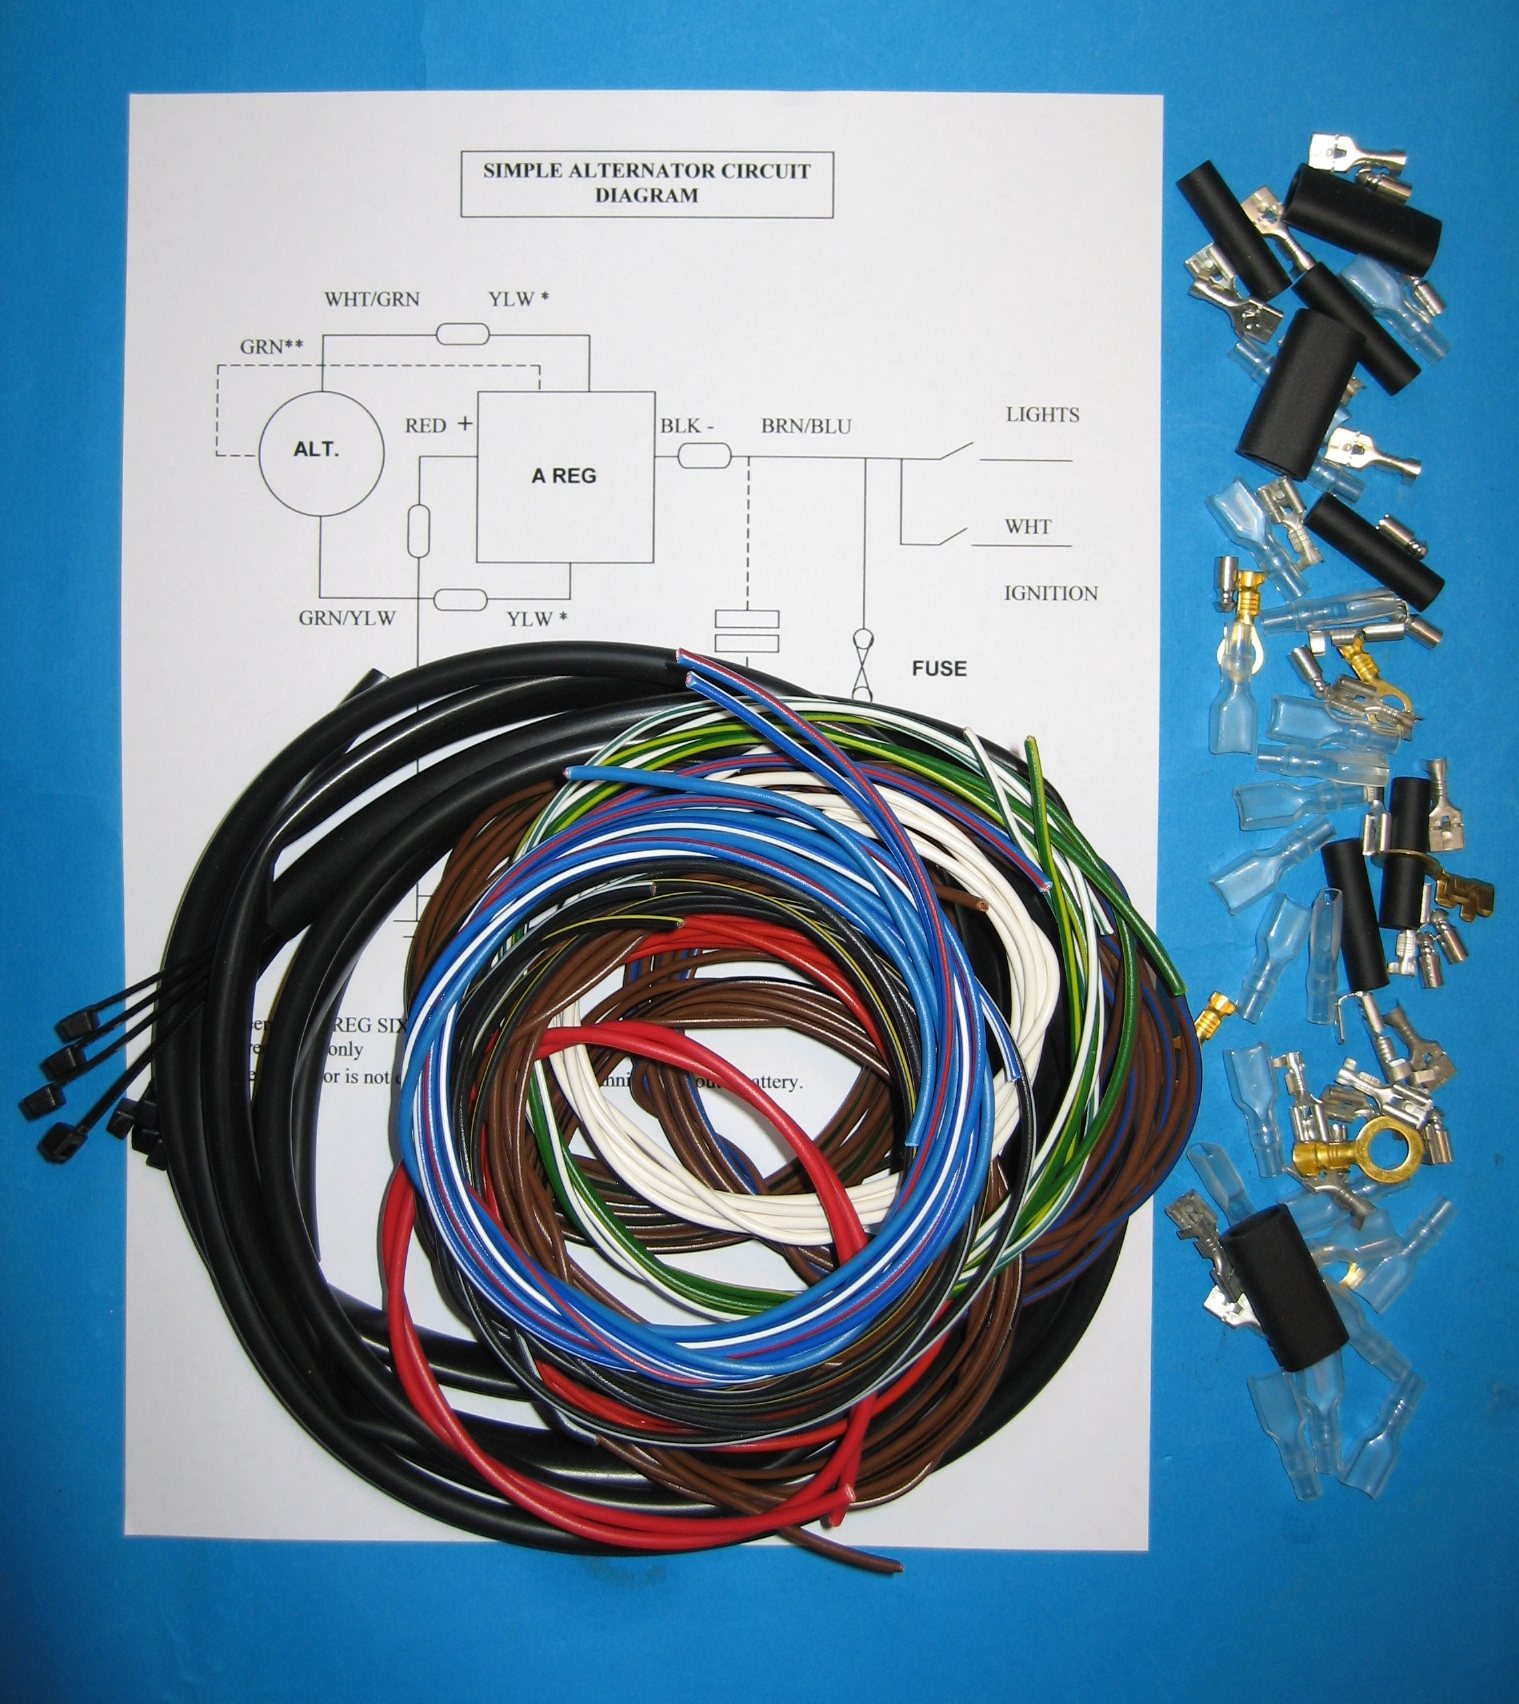 1968 bsa lightning wiring diagram wirdig wiring diagram for triumph bsa boyer ignition pictures to pin on